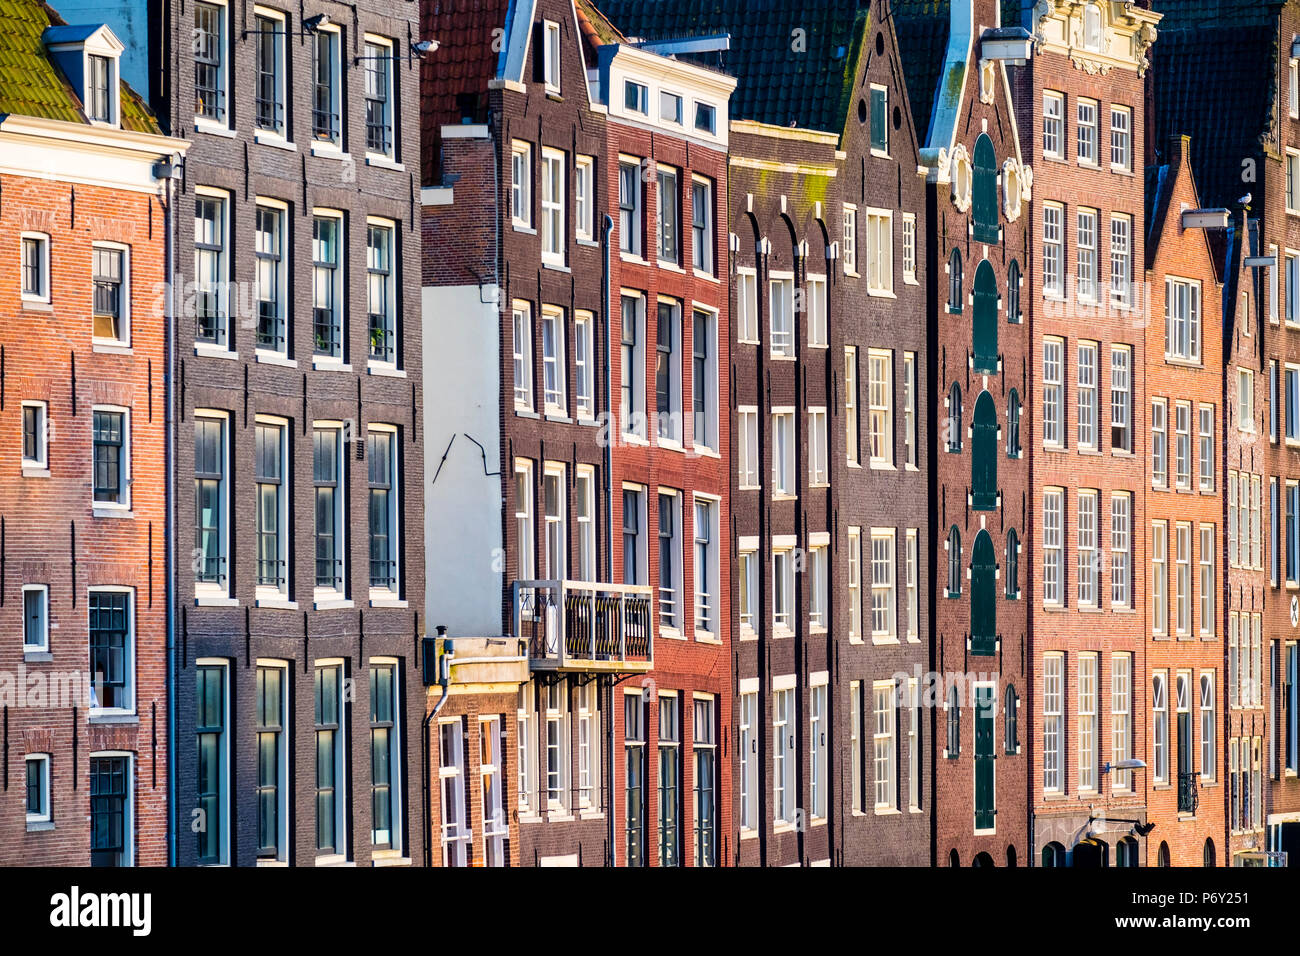 Netherlands, North Holland, Amsterdam. Crooked facades of canal houses on Damrak. - Stock Image